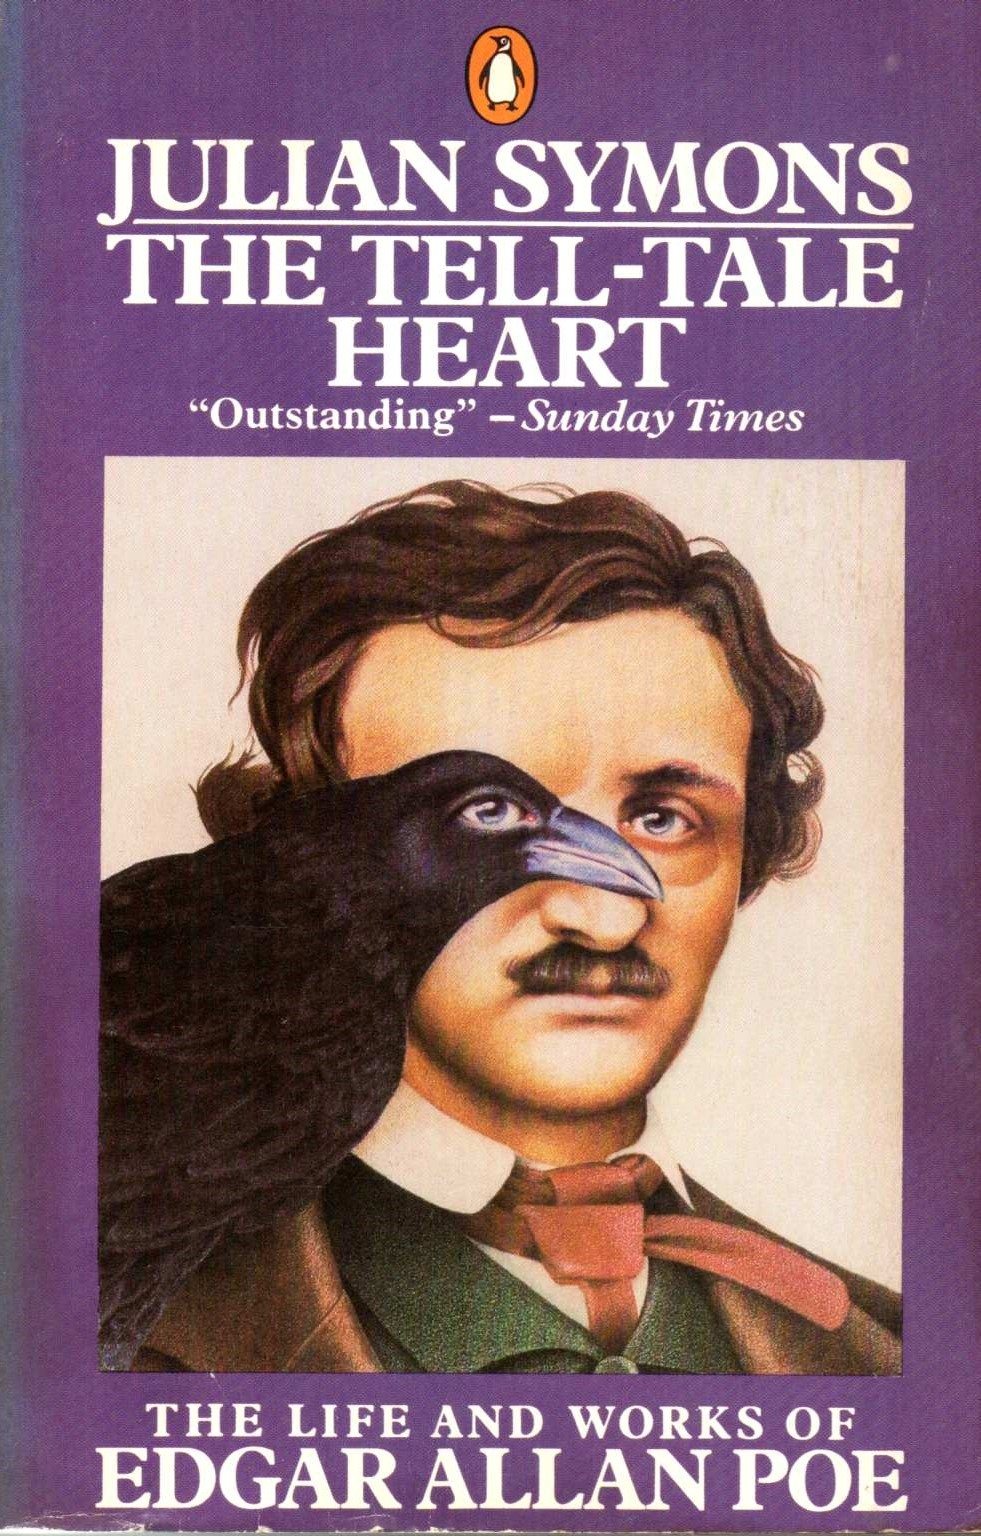 the lottery and the tell tale heart 1840s: the tell-tale heart is published in 1843 the story is a psychological thriller that invites the reader into the world of the narrator's insanity the story is a psychological thriller that invites the reader into the world of the narrator's insanity.